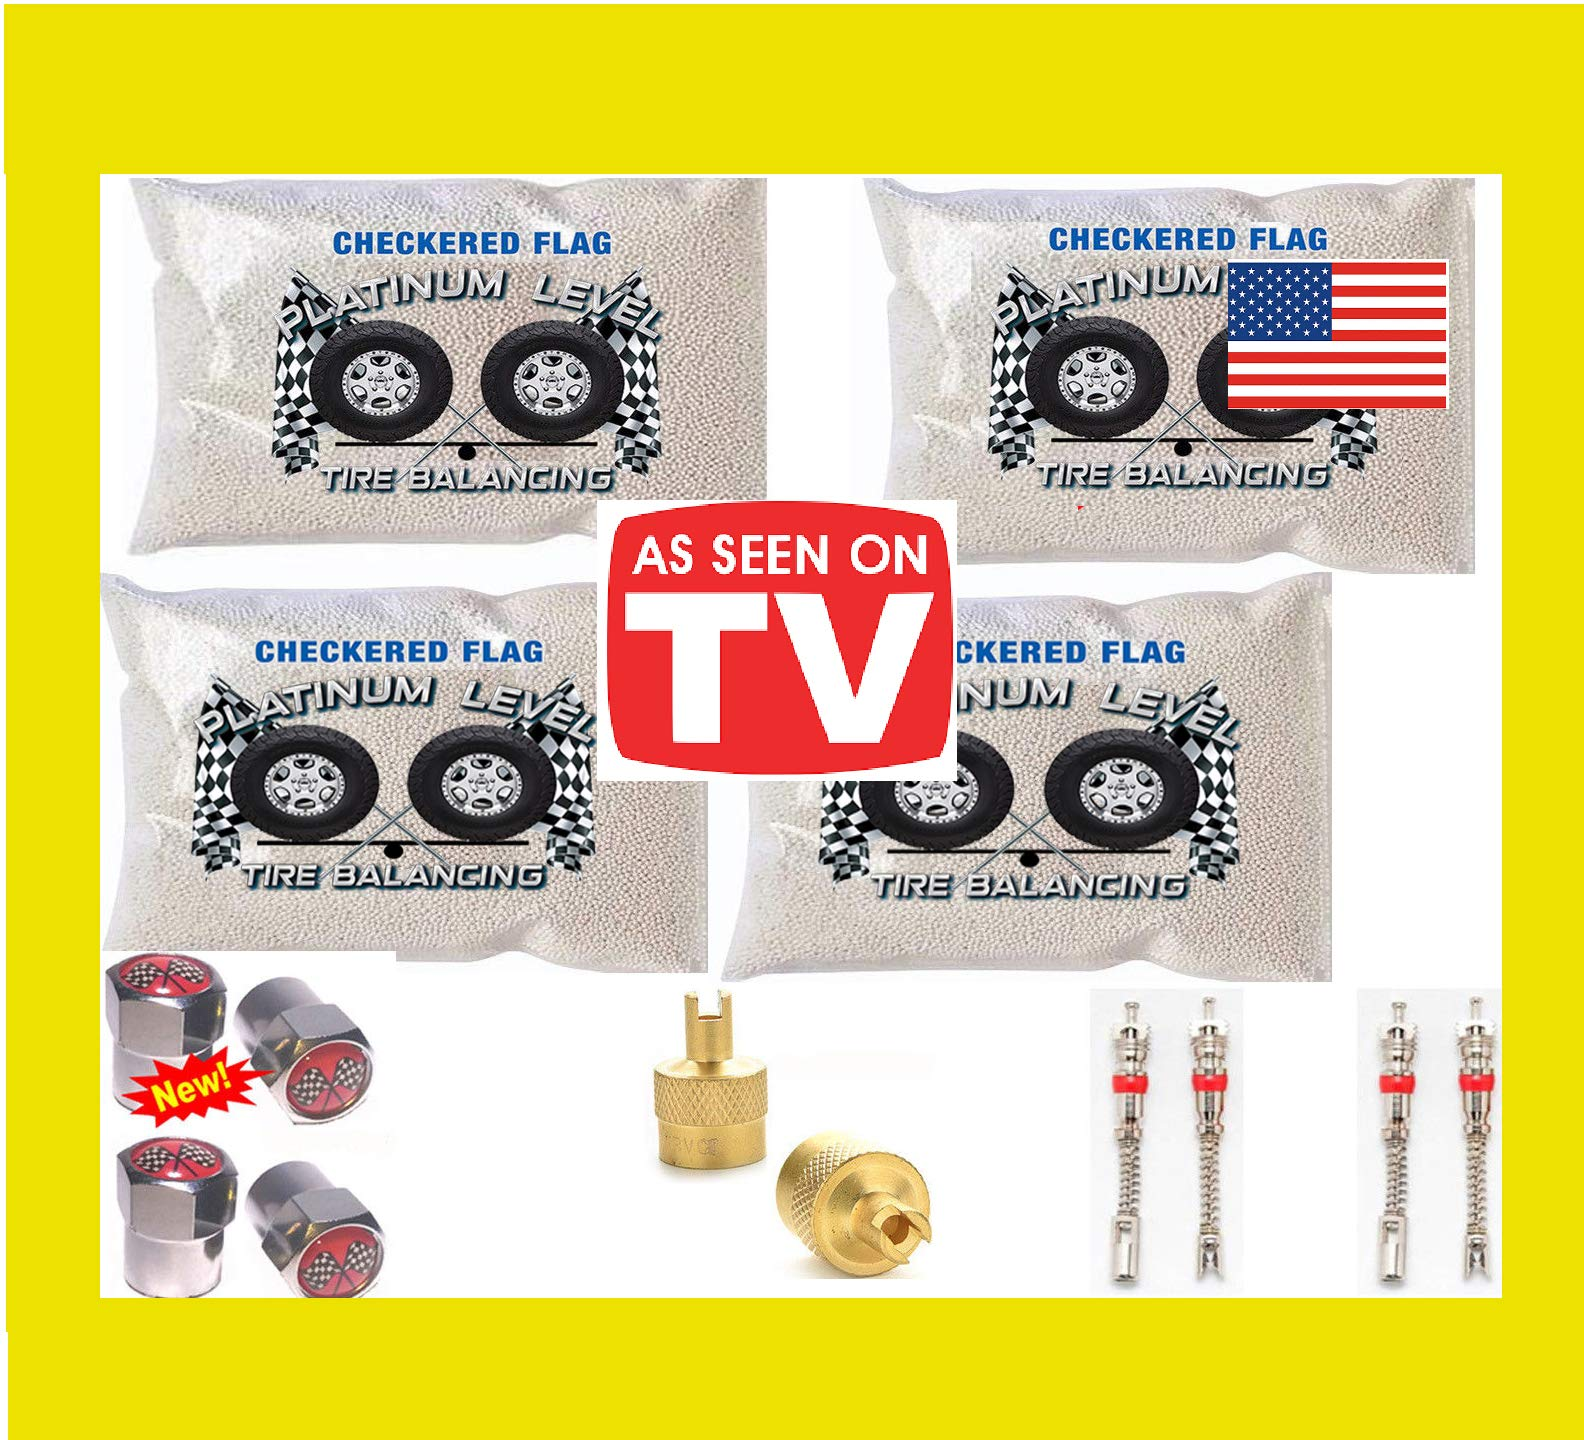 Tire Balancing Beads 4-6oz Bags, 24 Ounce Tire Balancing Beads Kit, Filtered Valve Cores, Chrome Caps Included with DIY Tire Beads by Checkered Flag Tire Beads